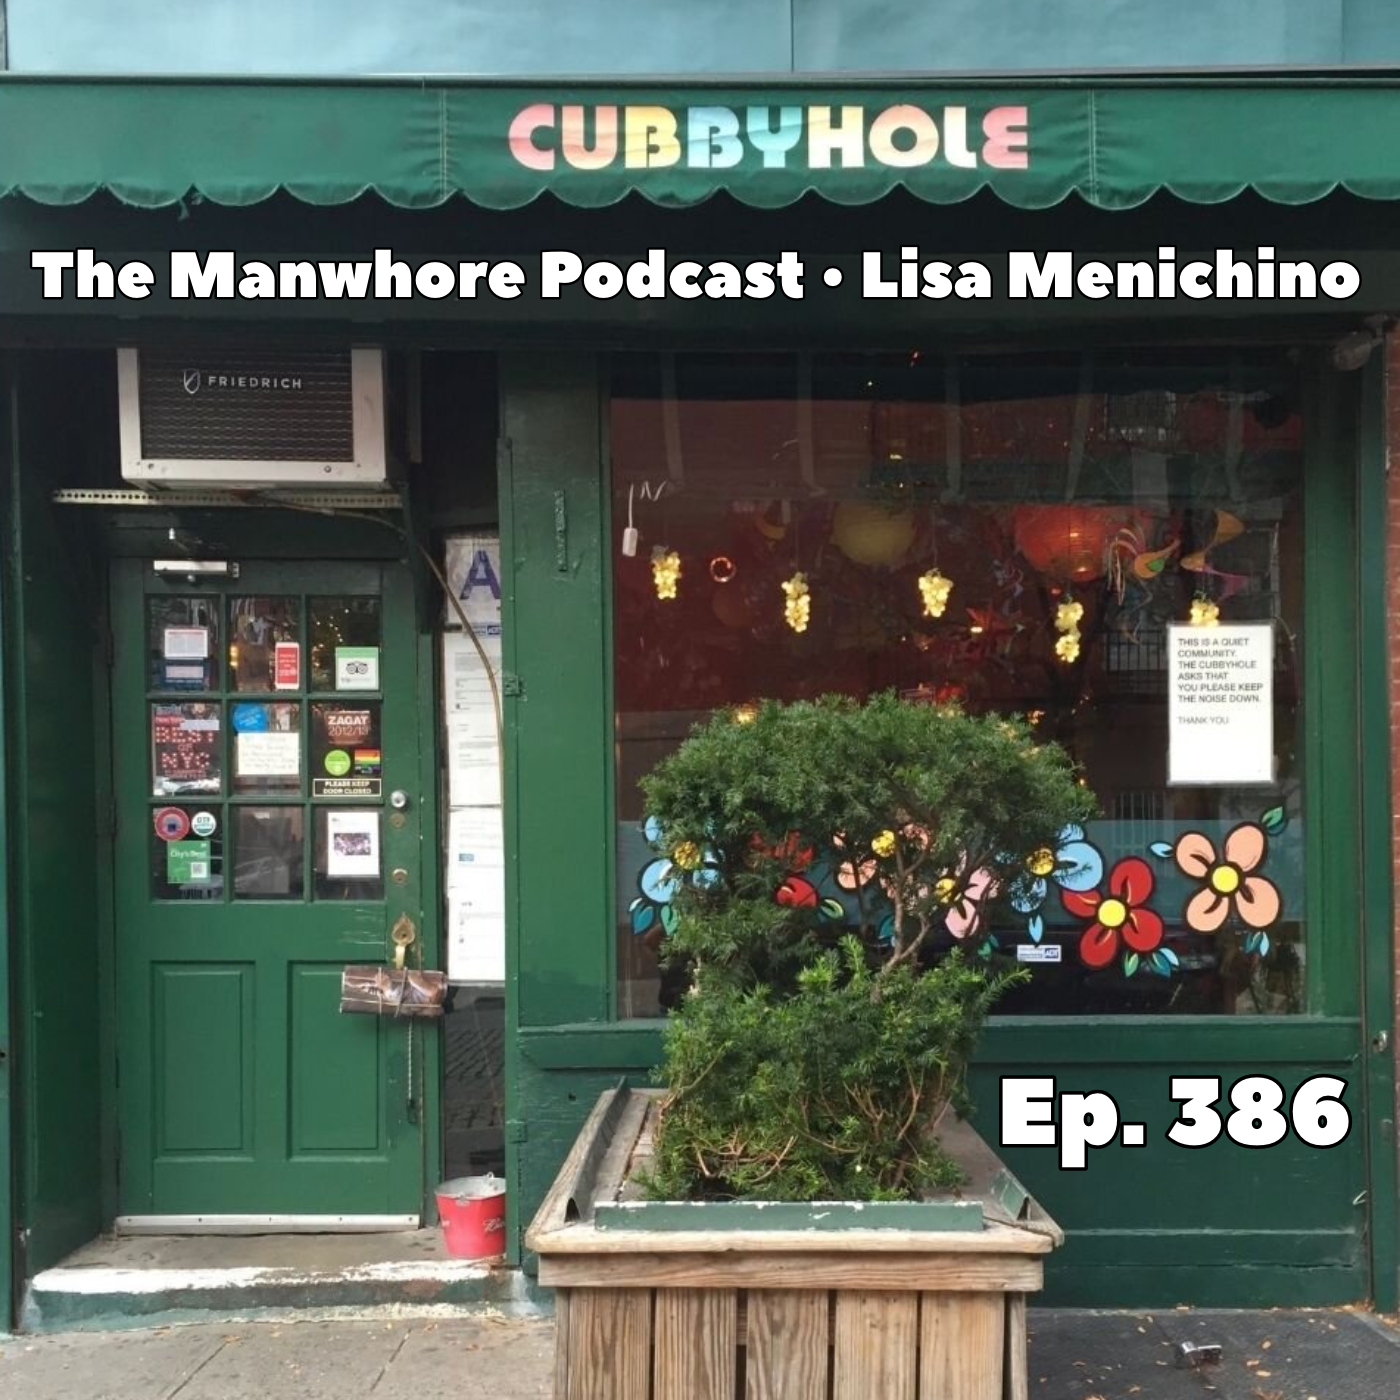 The Manwhore Podcast: A Sex-Positive Quest - Ep. 386: How Cubbyhole Keeps Lesbian PRIDE Alive with owner Lisa Menichino